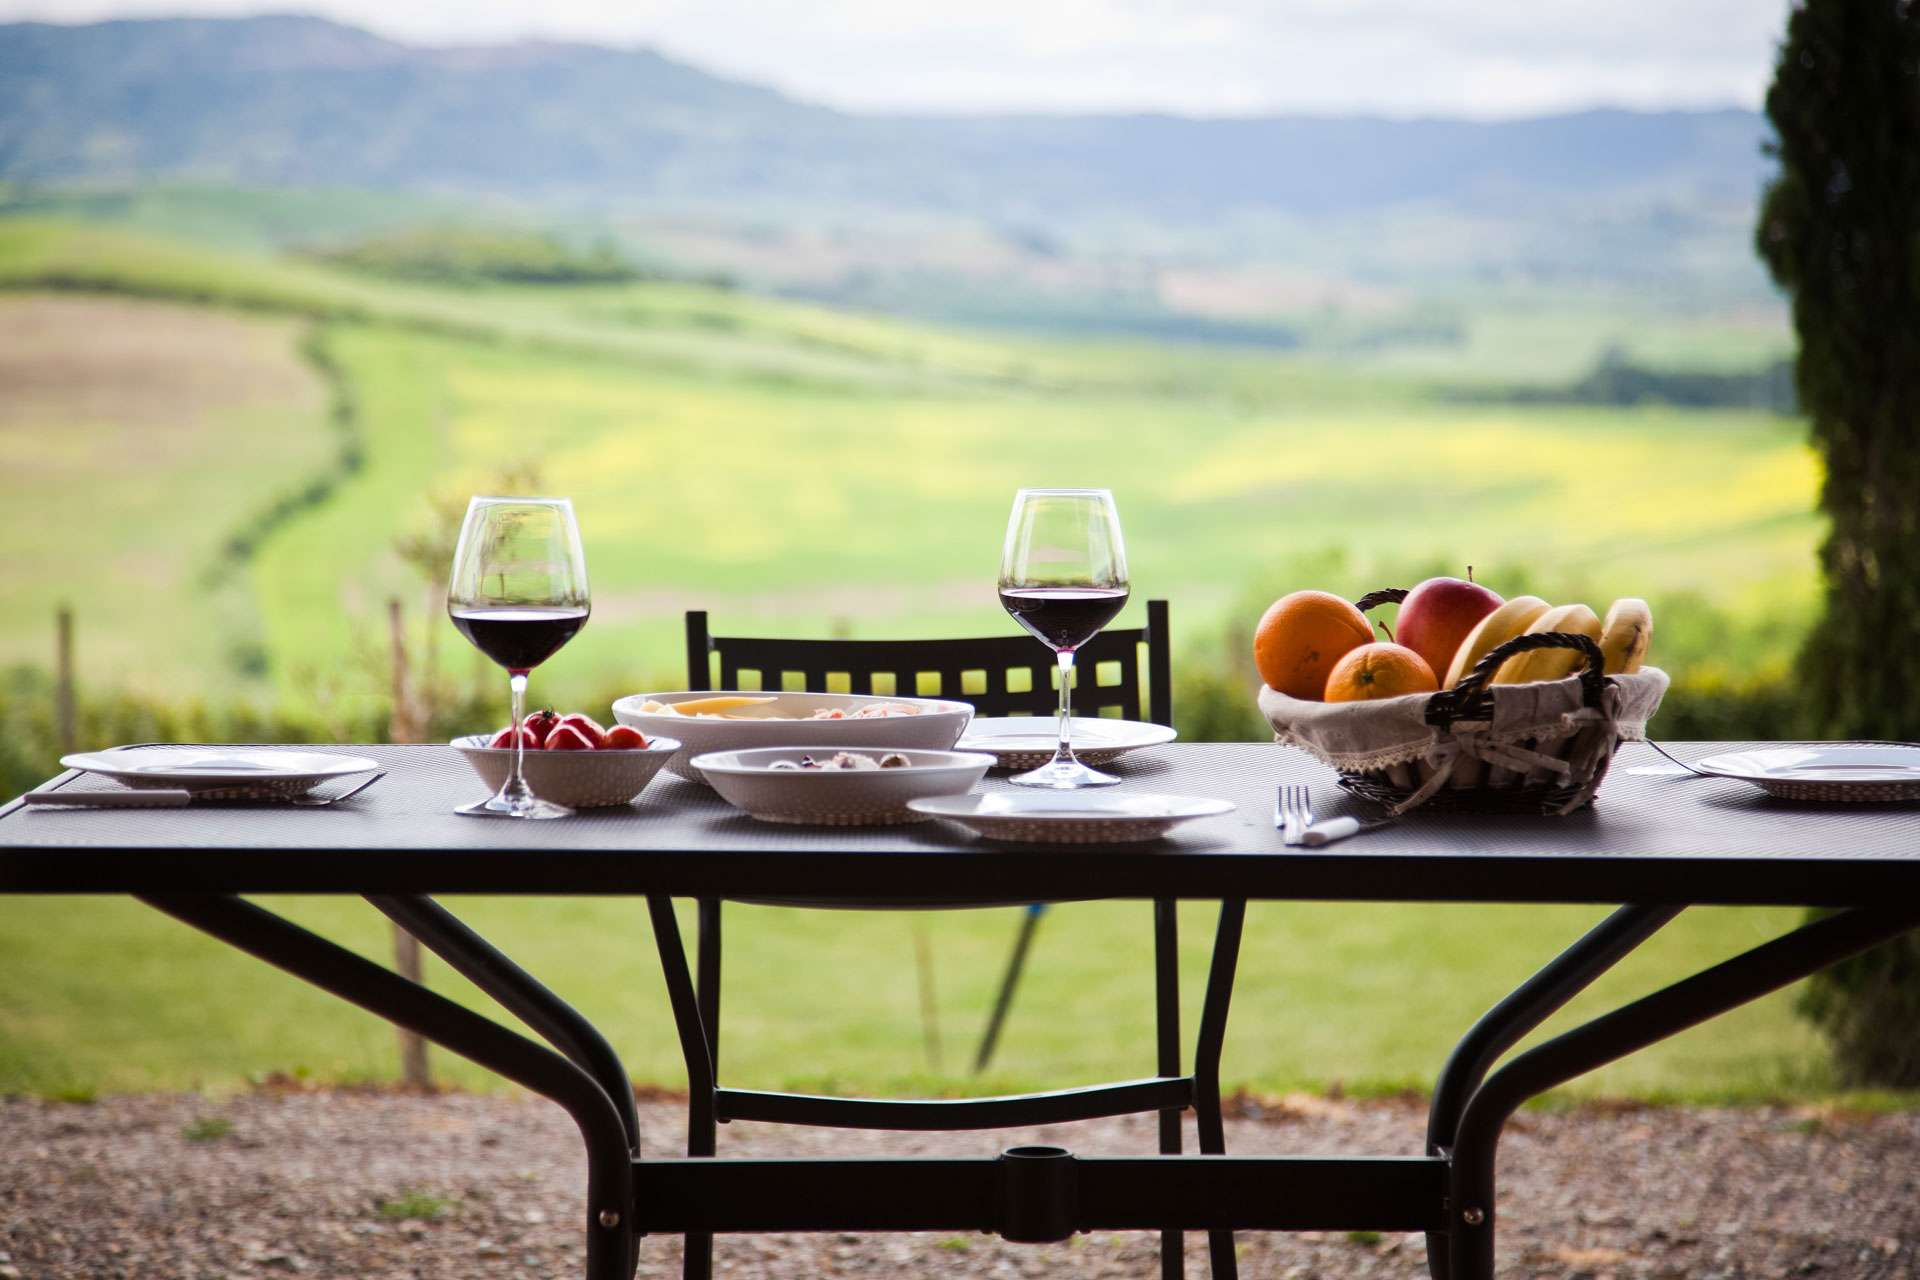 A Beginners Guide to Chianti Wine: Part 2